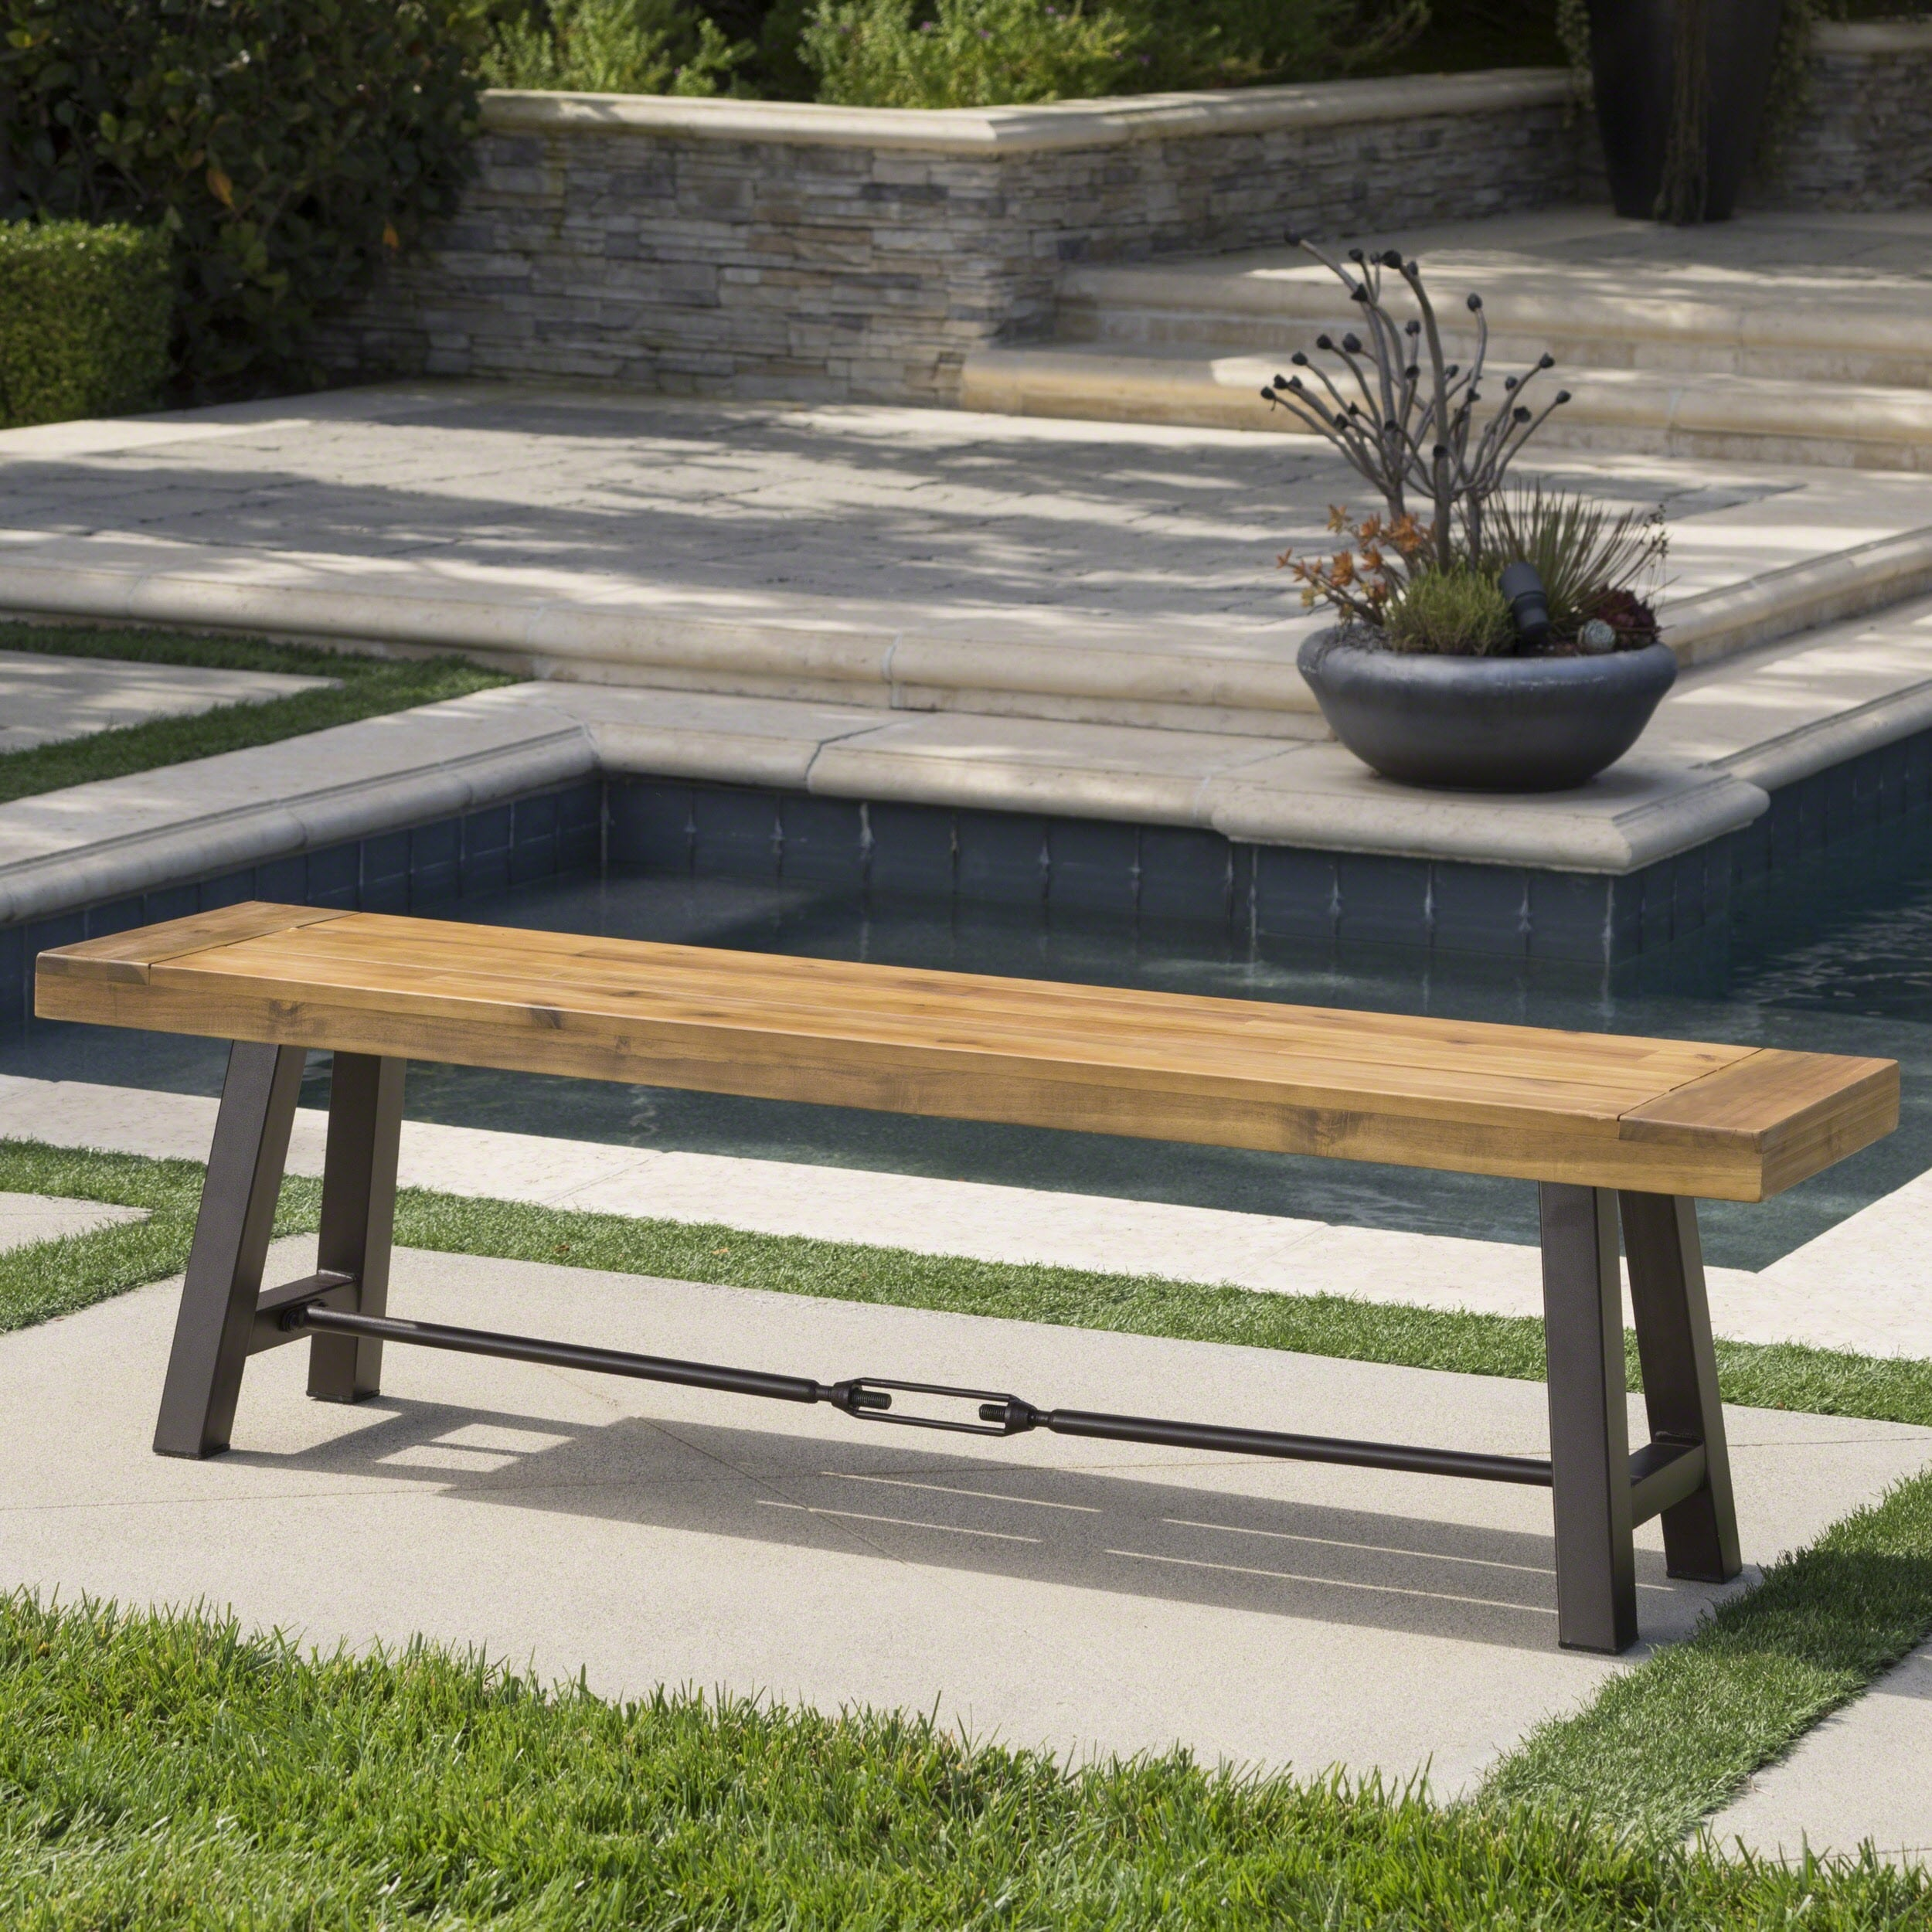 bronte de by stoolsbenchesbenches benches outdoor furn designer furniture products stools eco ecooutdoor bench modern